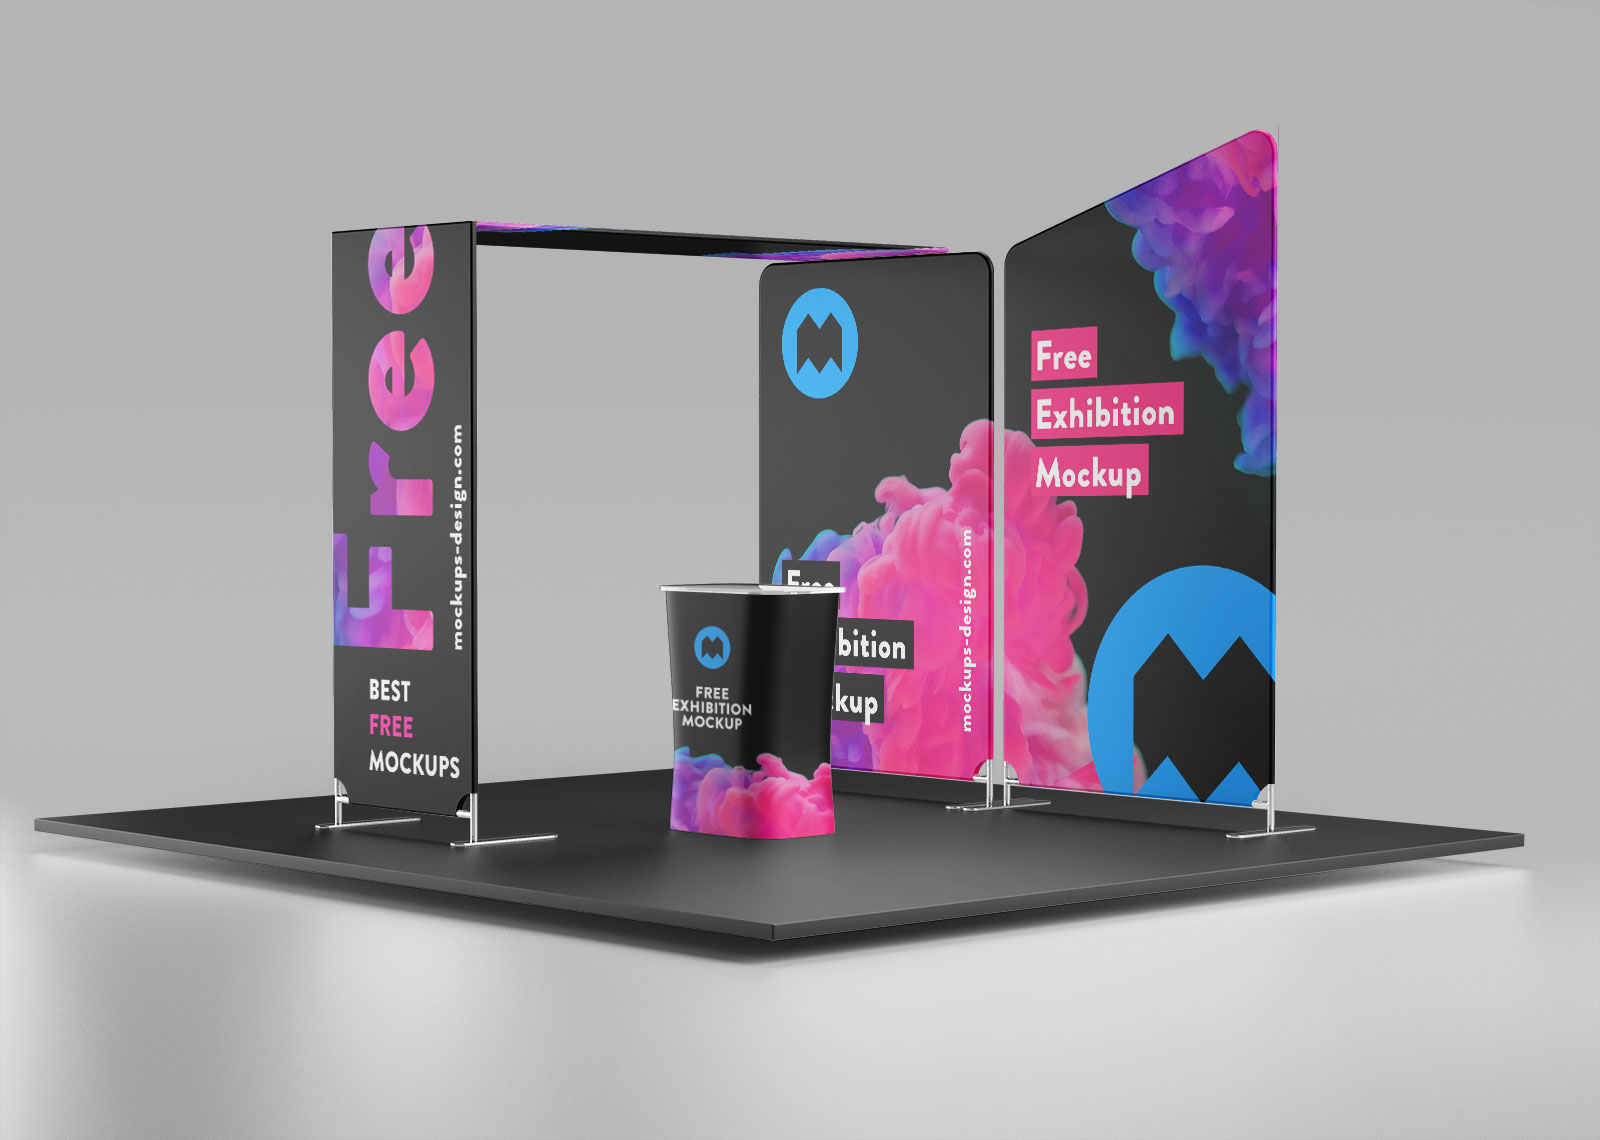 Free-Trade-Show-Exhibition-Display-Stand-Mockup-PSD-3